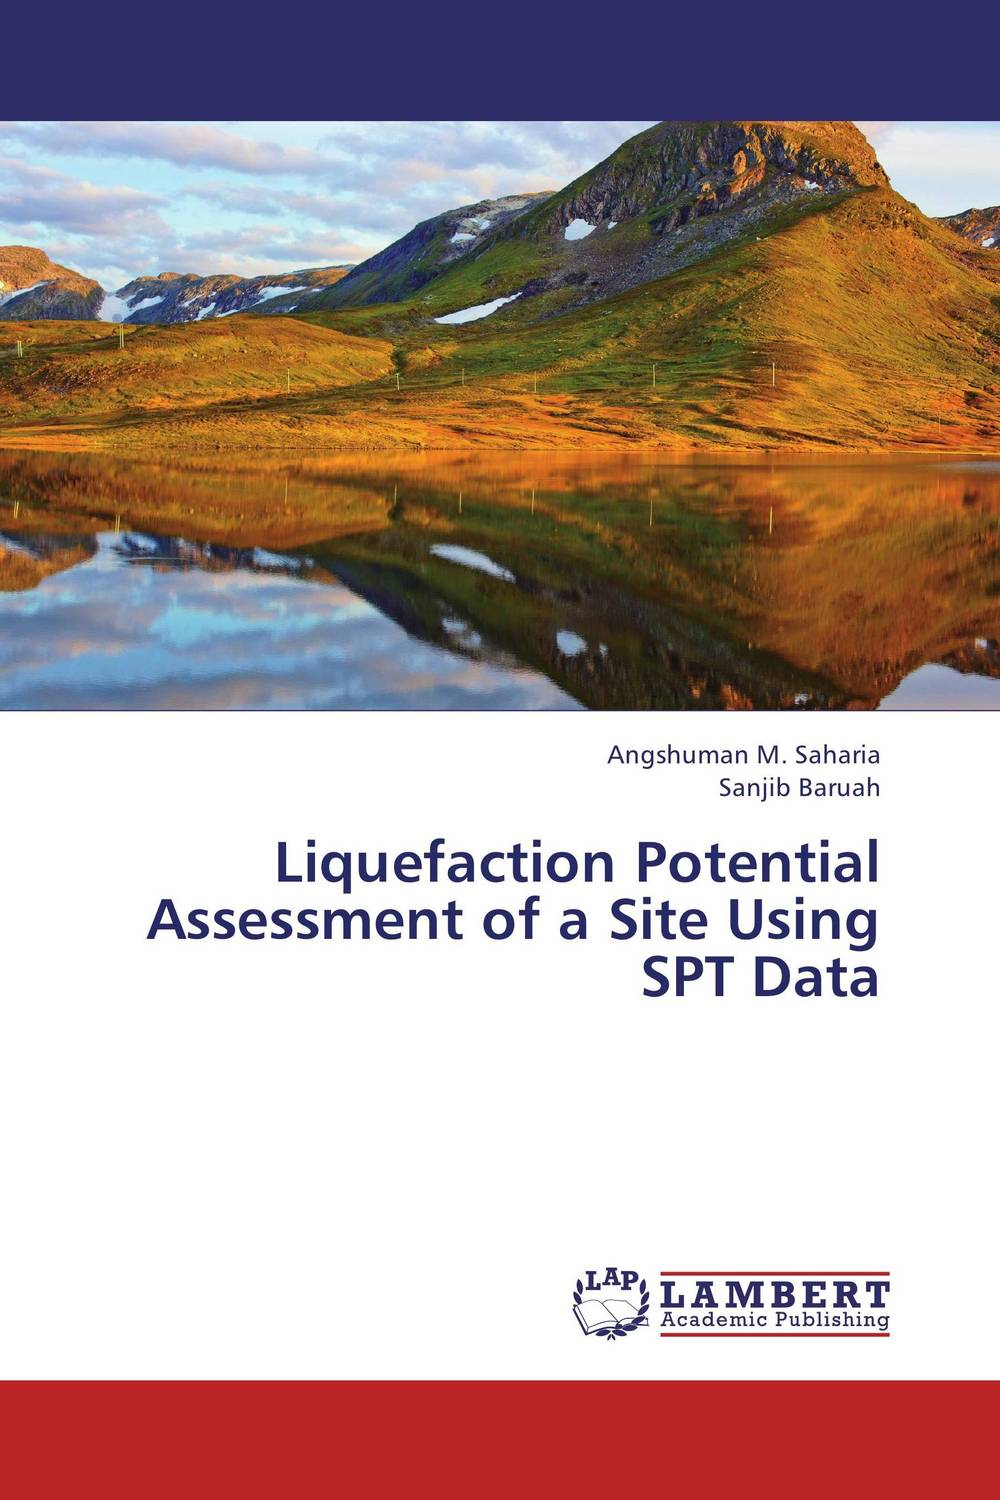 Liquefaction Potential Assessment of a Site Using SPT Data michael milimu implementation of hazard analysis critical control